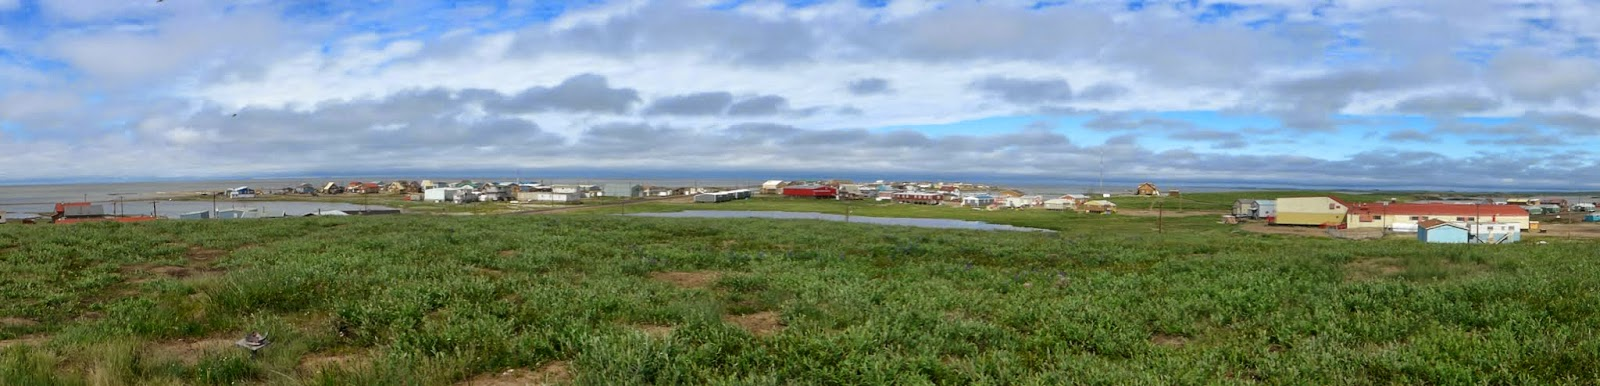 Panorama of Tuktoyaktuk